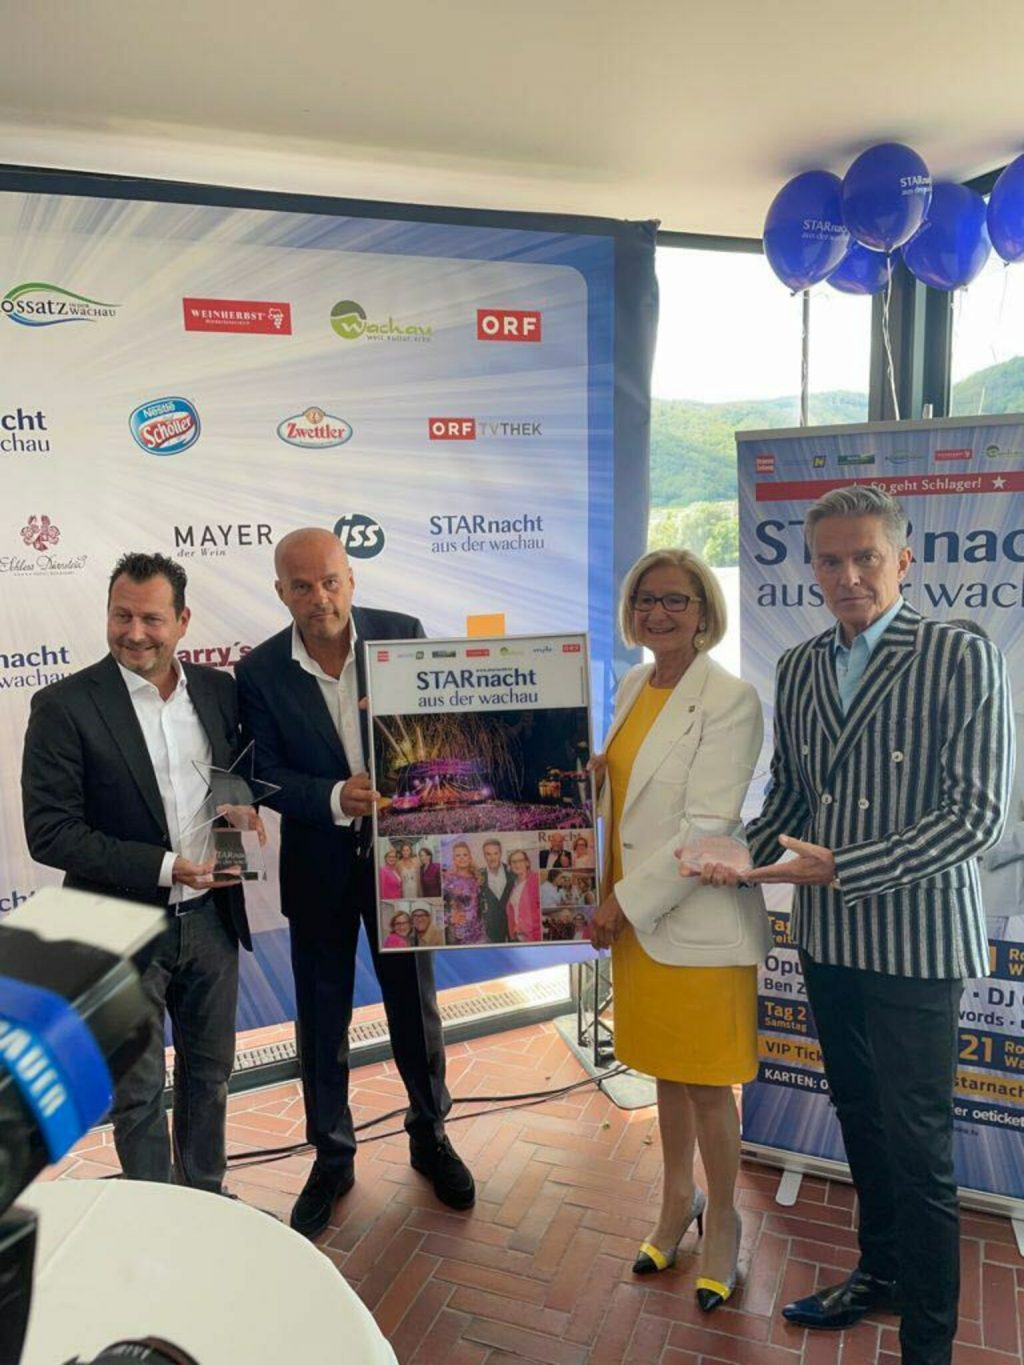 Star Night 2021: Rossatz as a setting for the 9th Star Night of Wachau